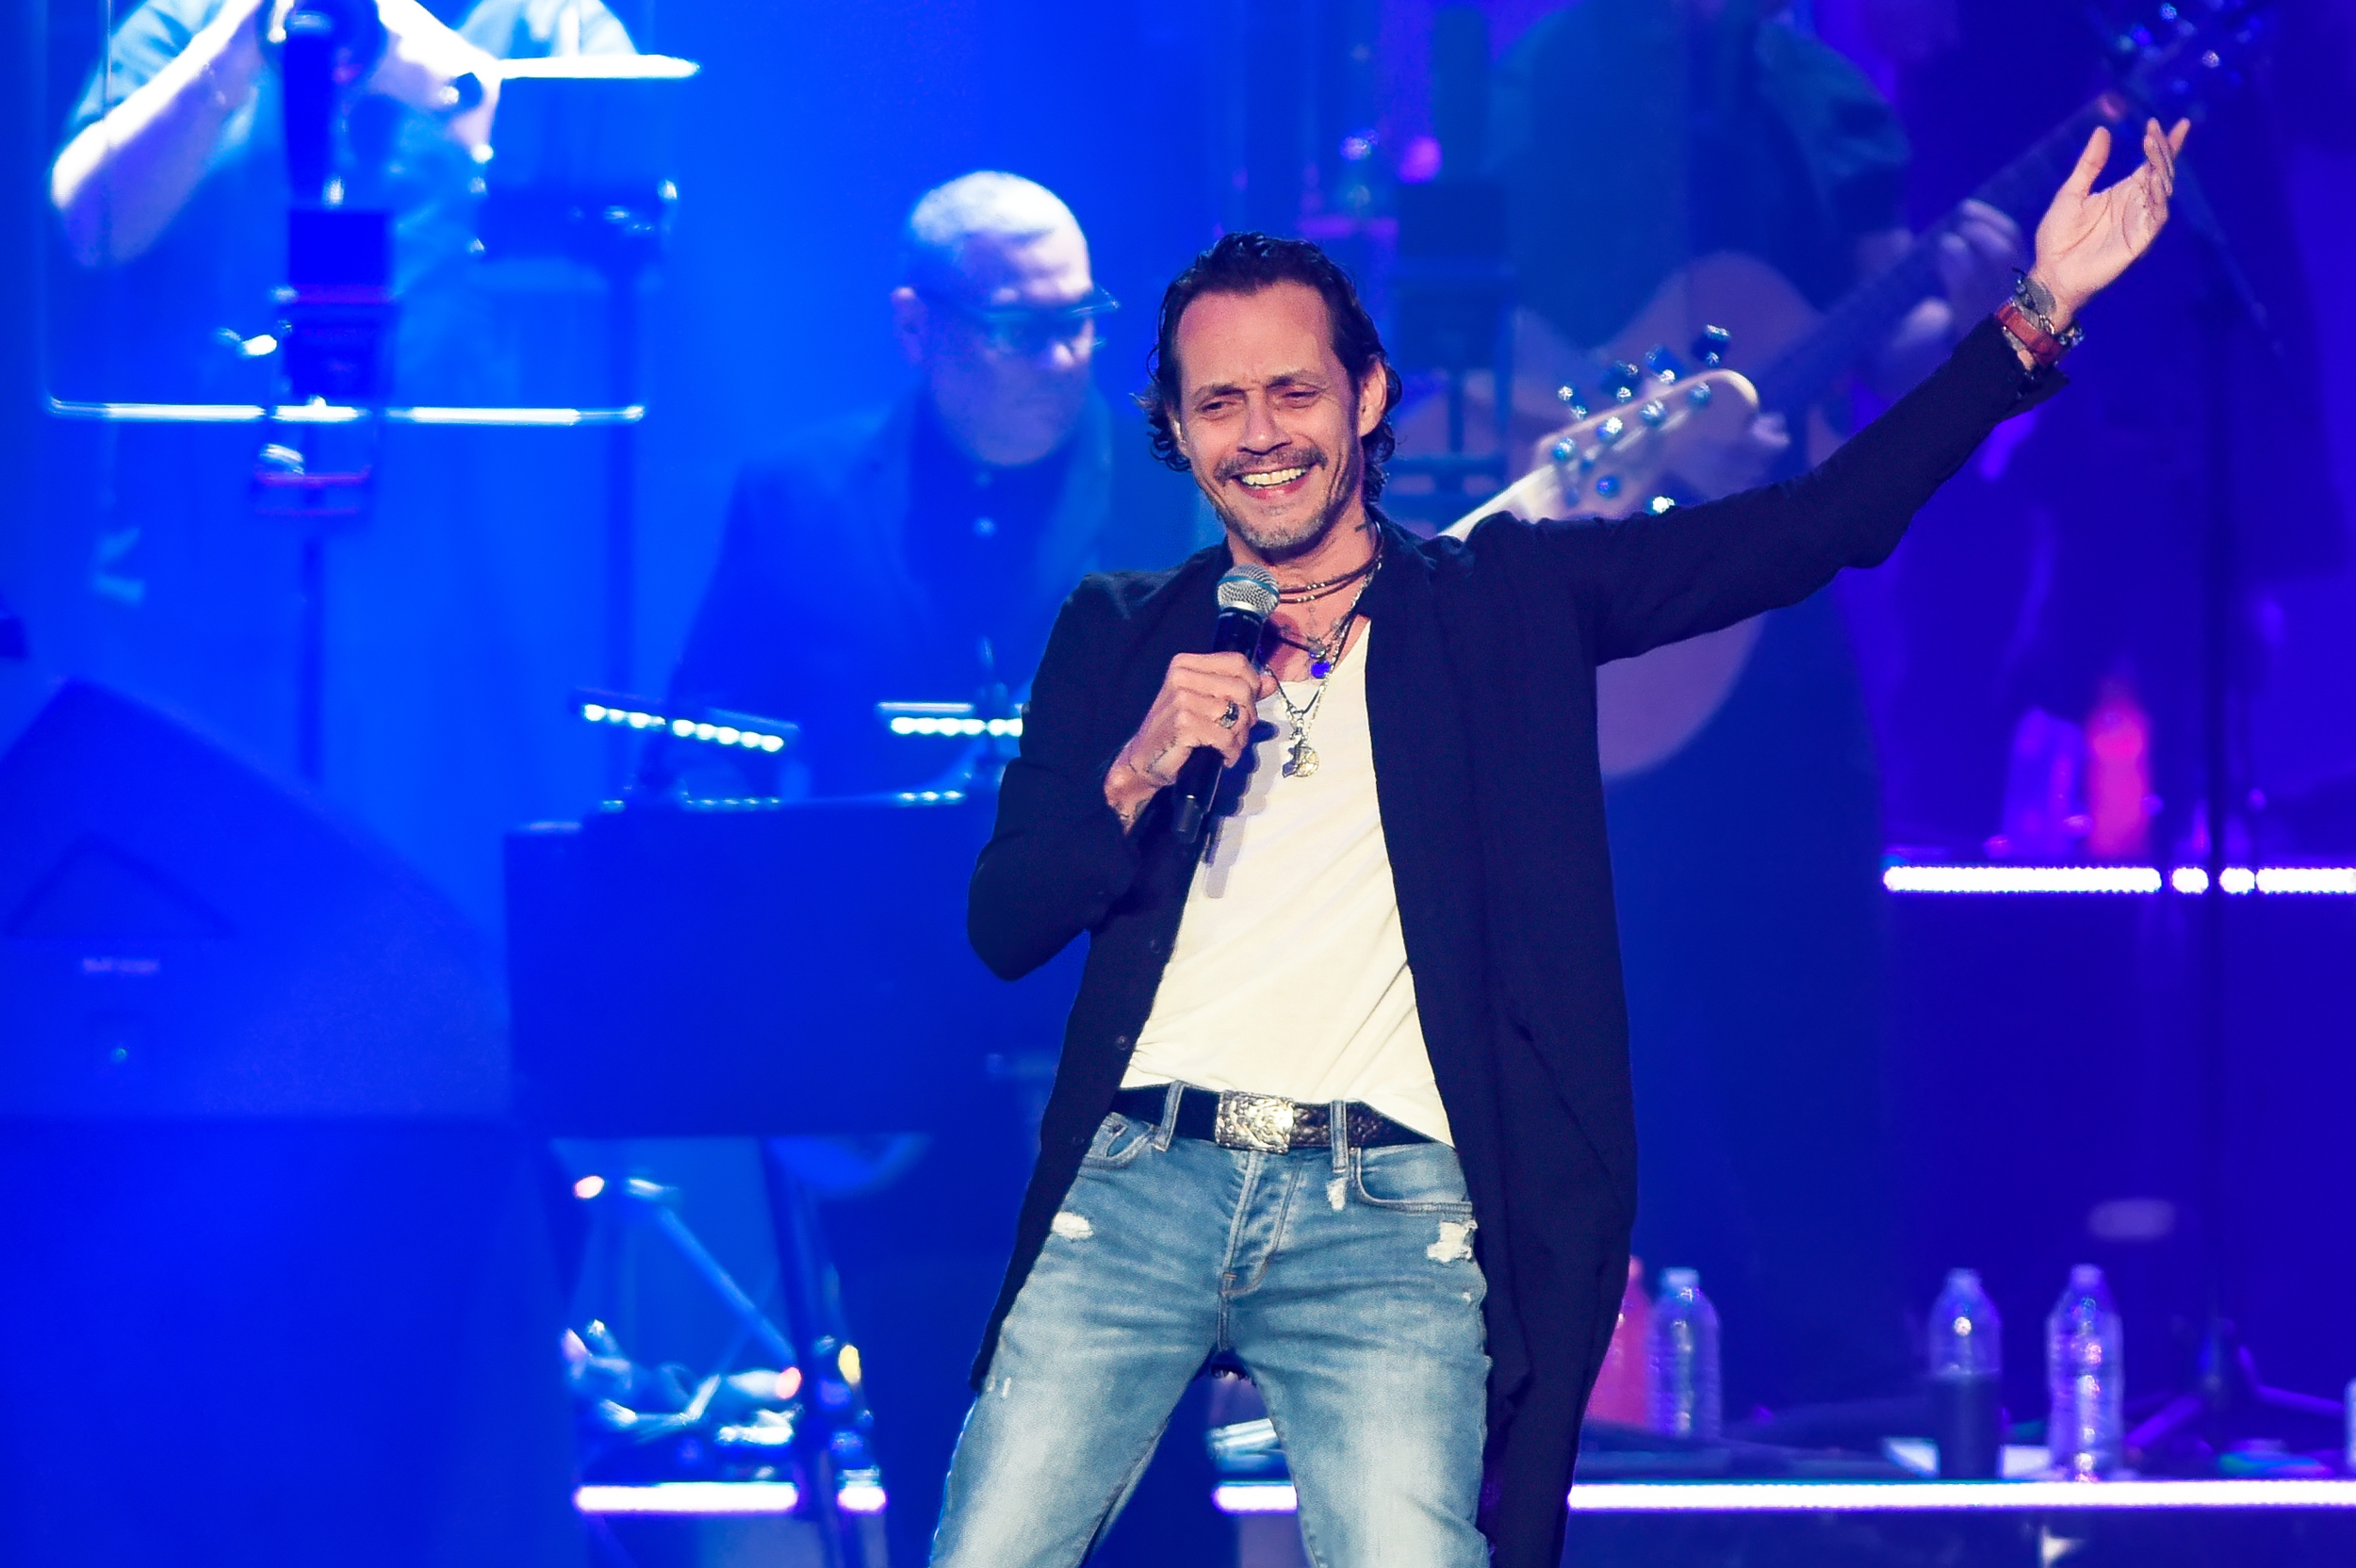 Marc Anthony in concert on the 2020 OPUS tour at the H.E.B. Center on March 1, 2020 in Cedar Park, Texas. Photo © Manuel Nauta